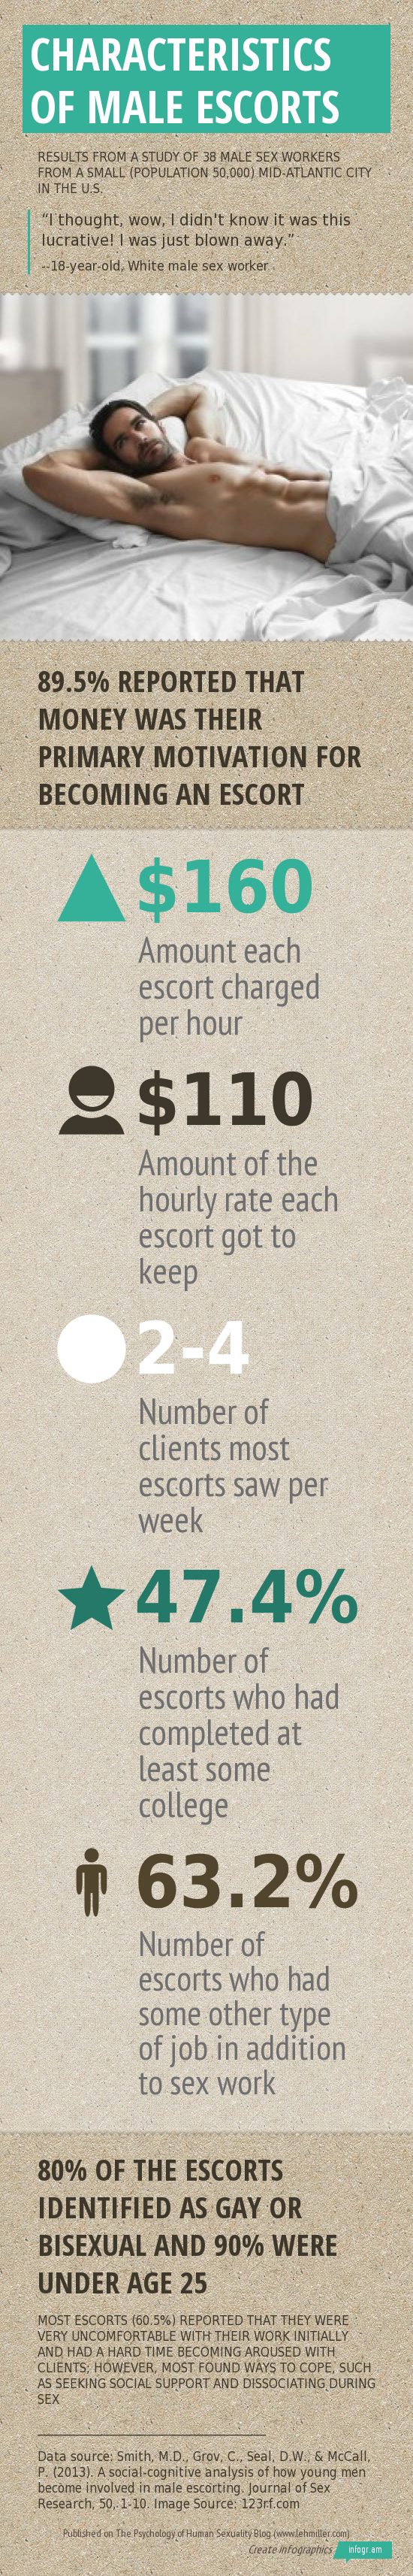 Infographic explaining how much money male escorts get paid and their typical characteristics